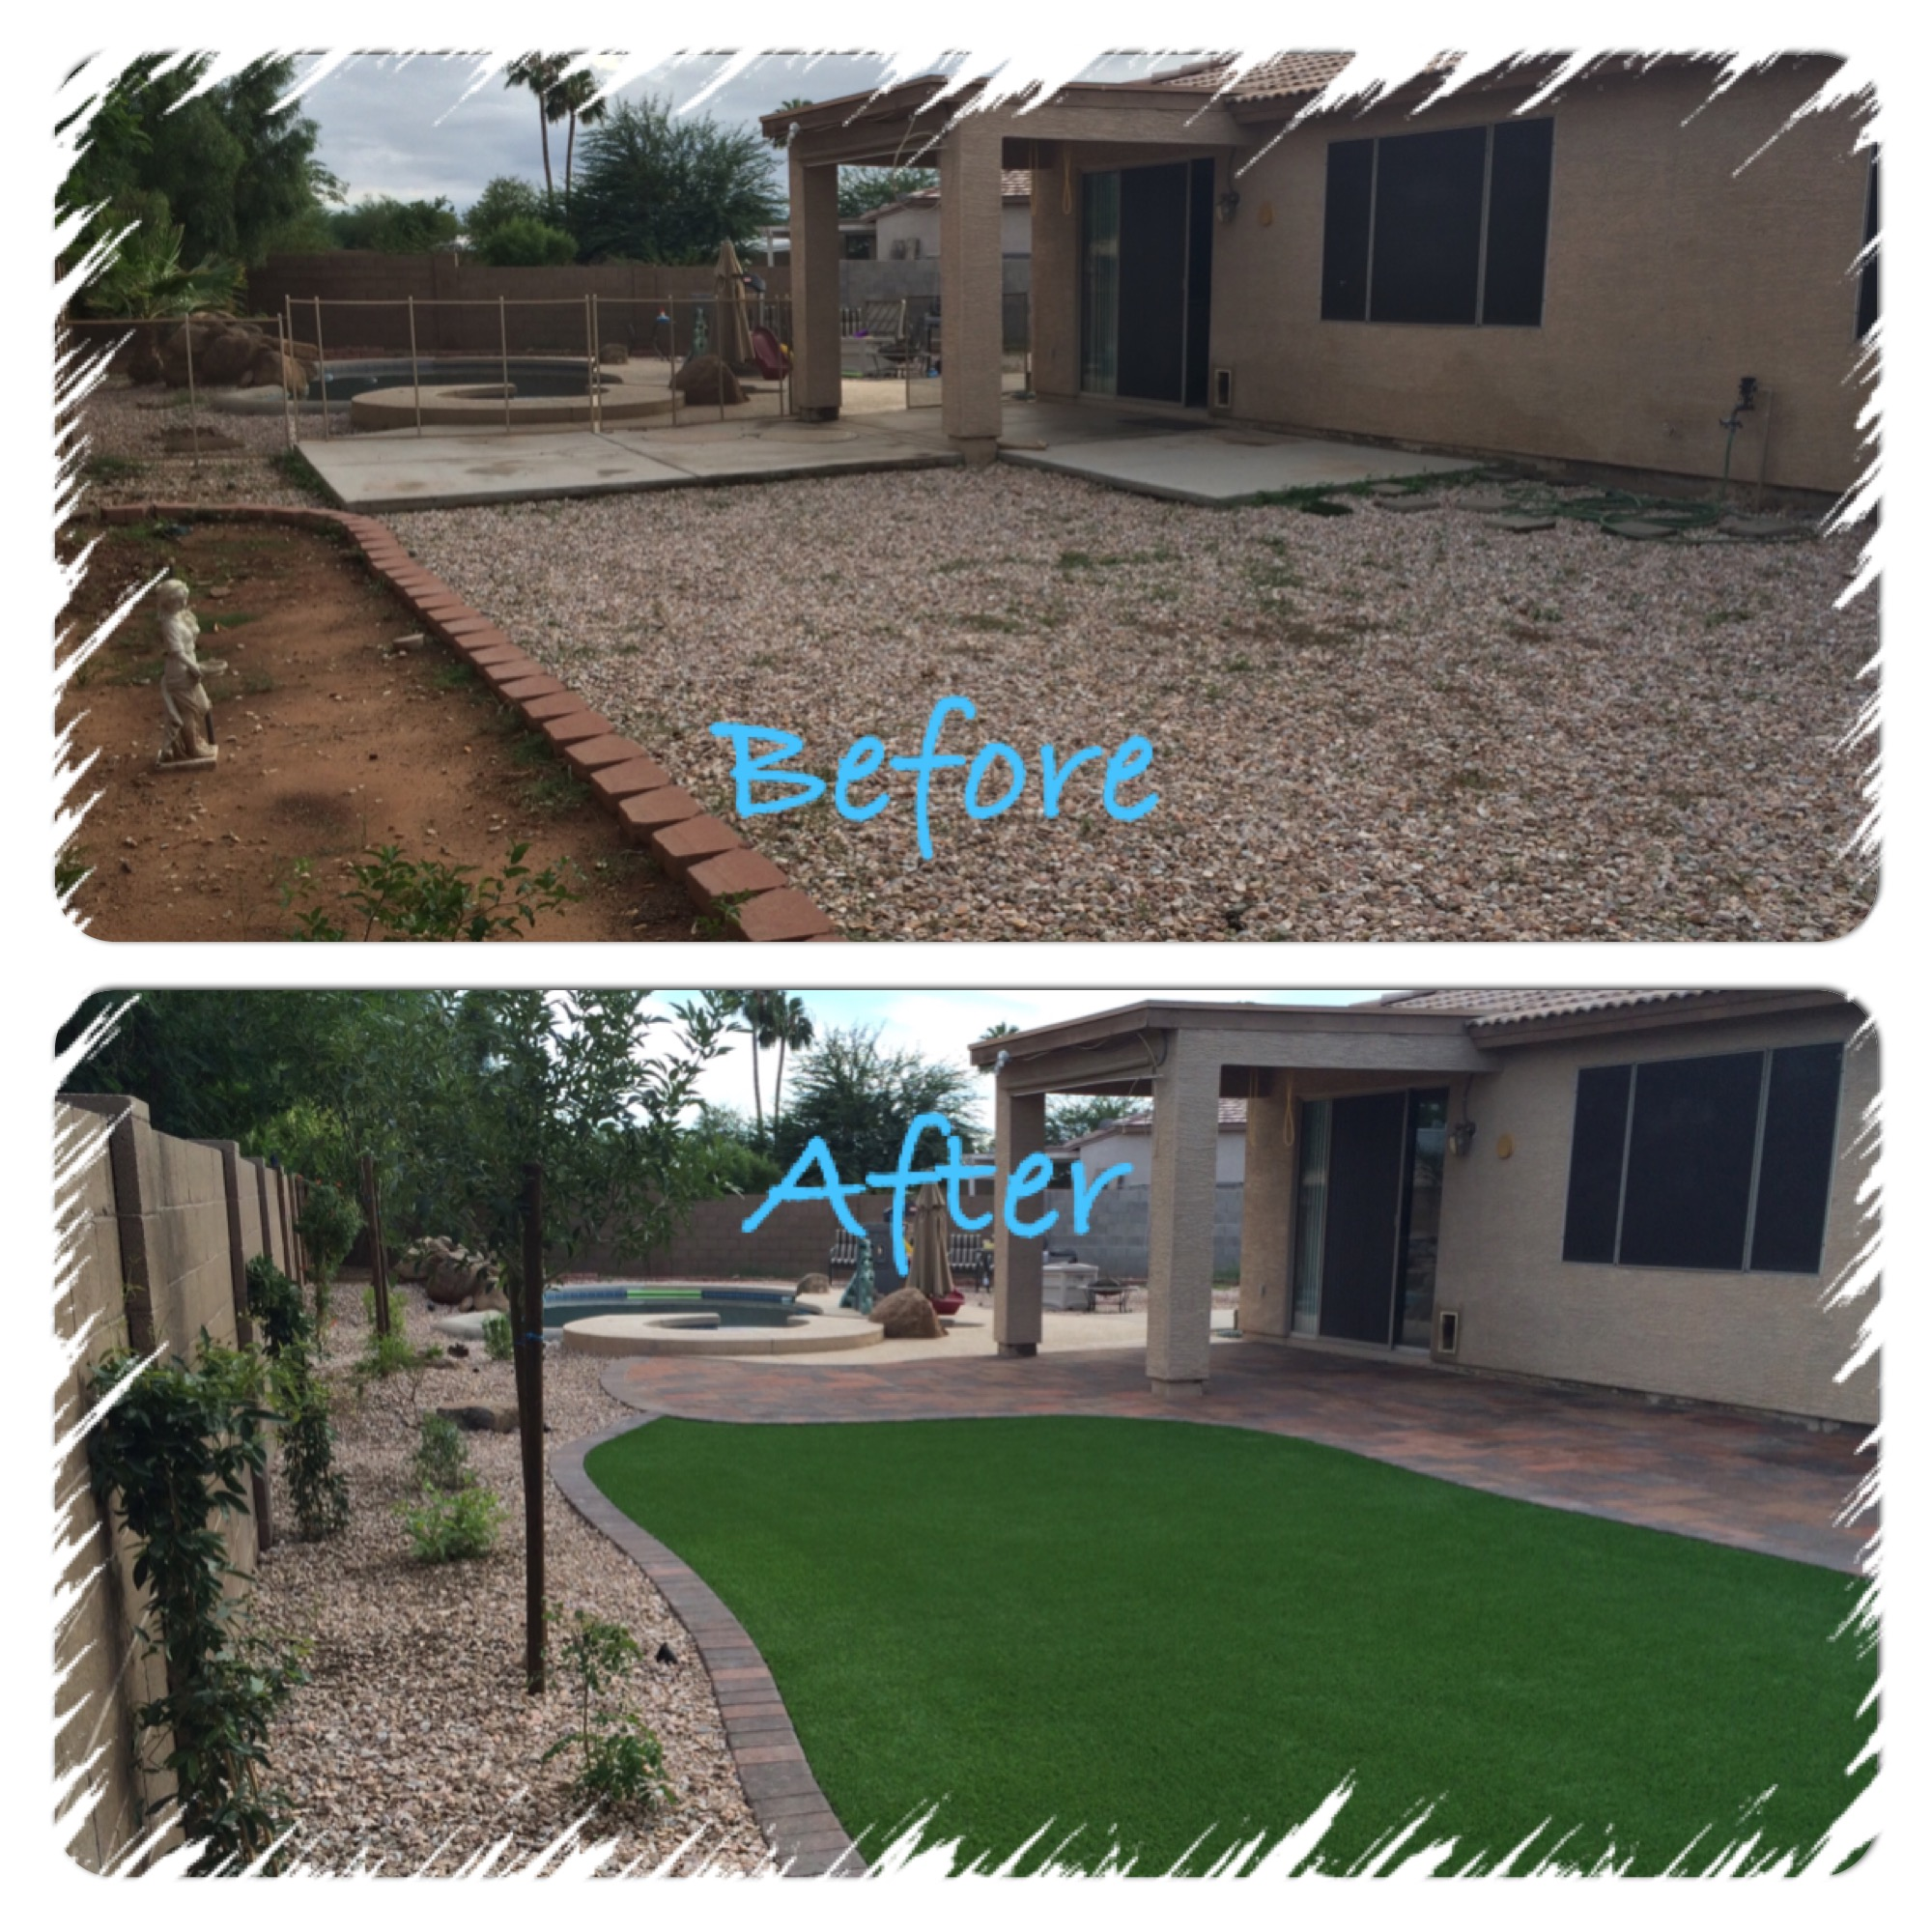 Patio designs archives arizona living landscape design for Backyard design ideas